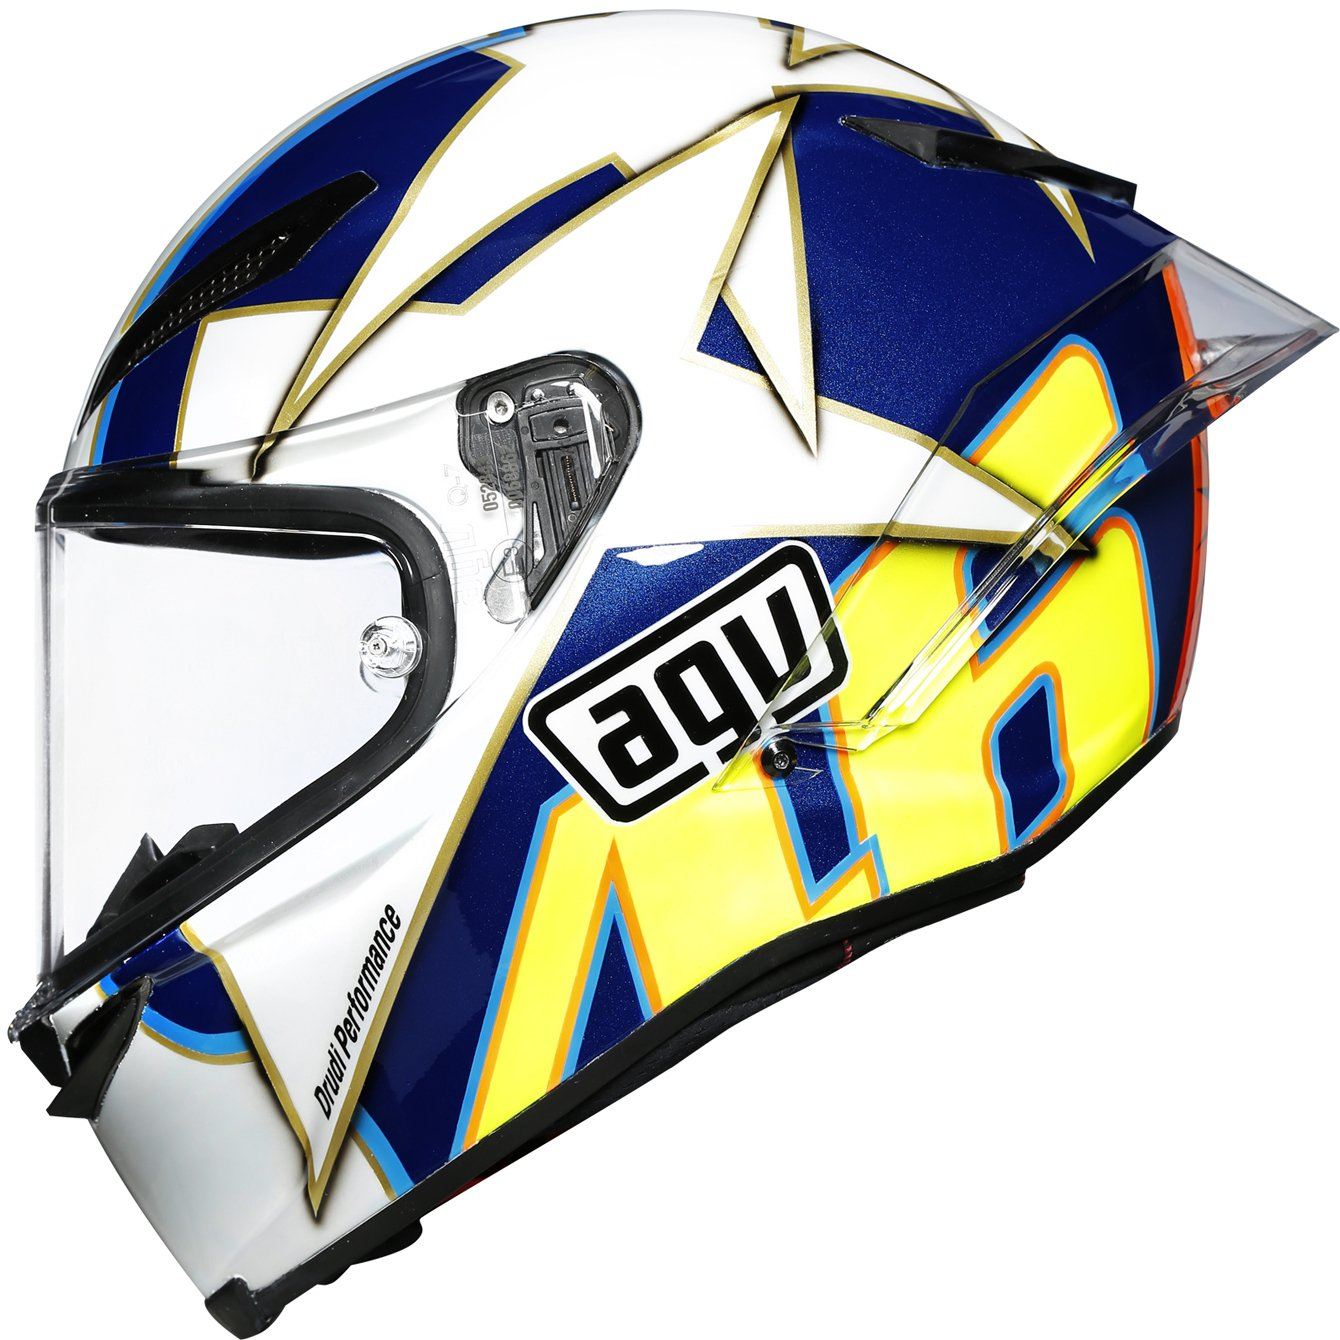 AGV Pista GP RR World Title 2003 Limited Edition 4